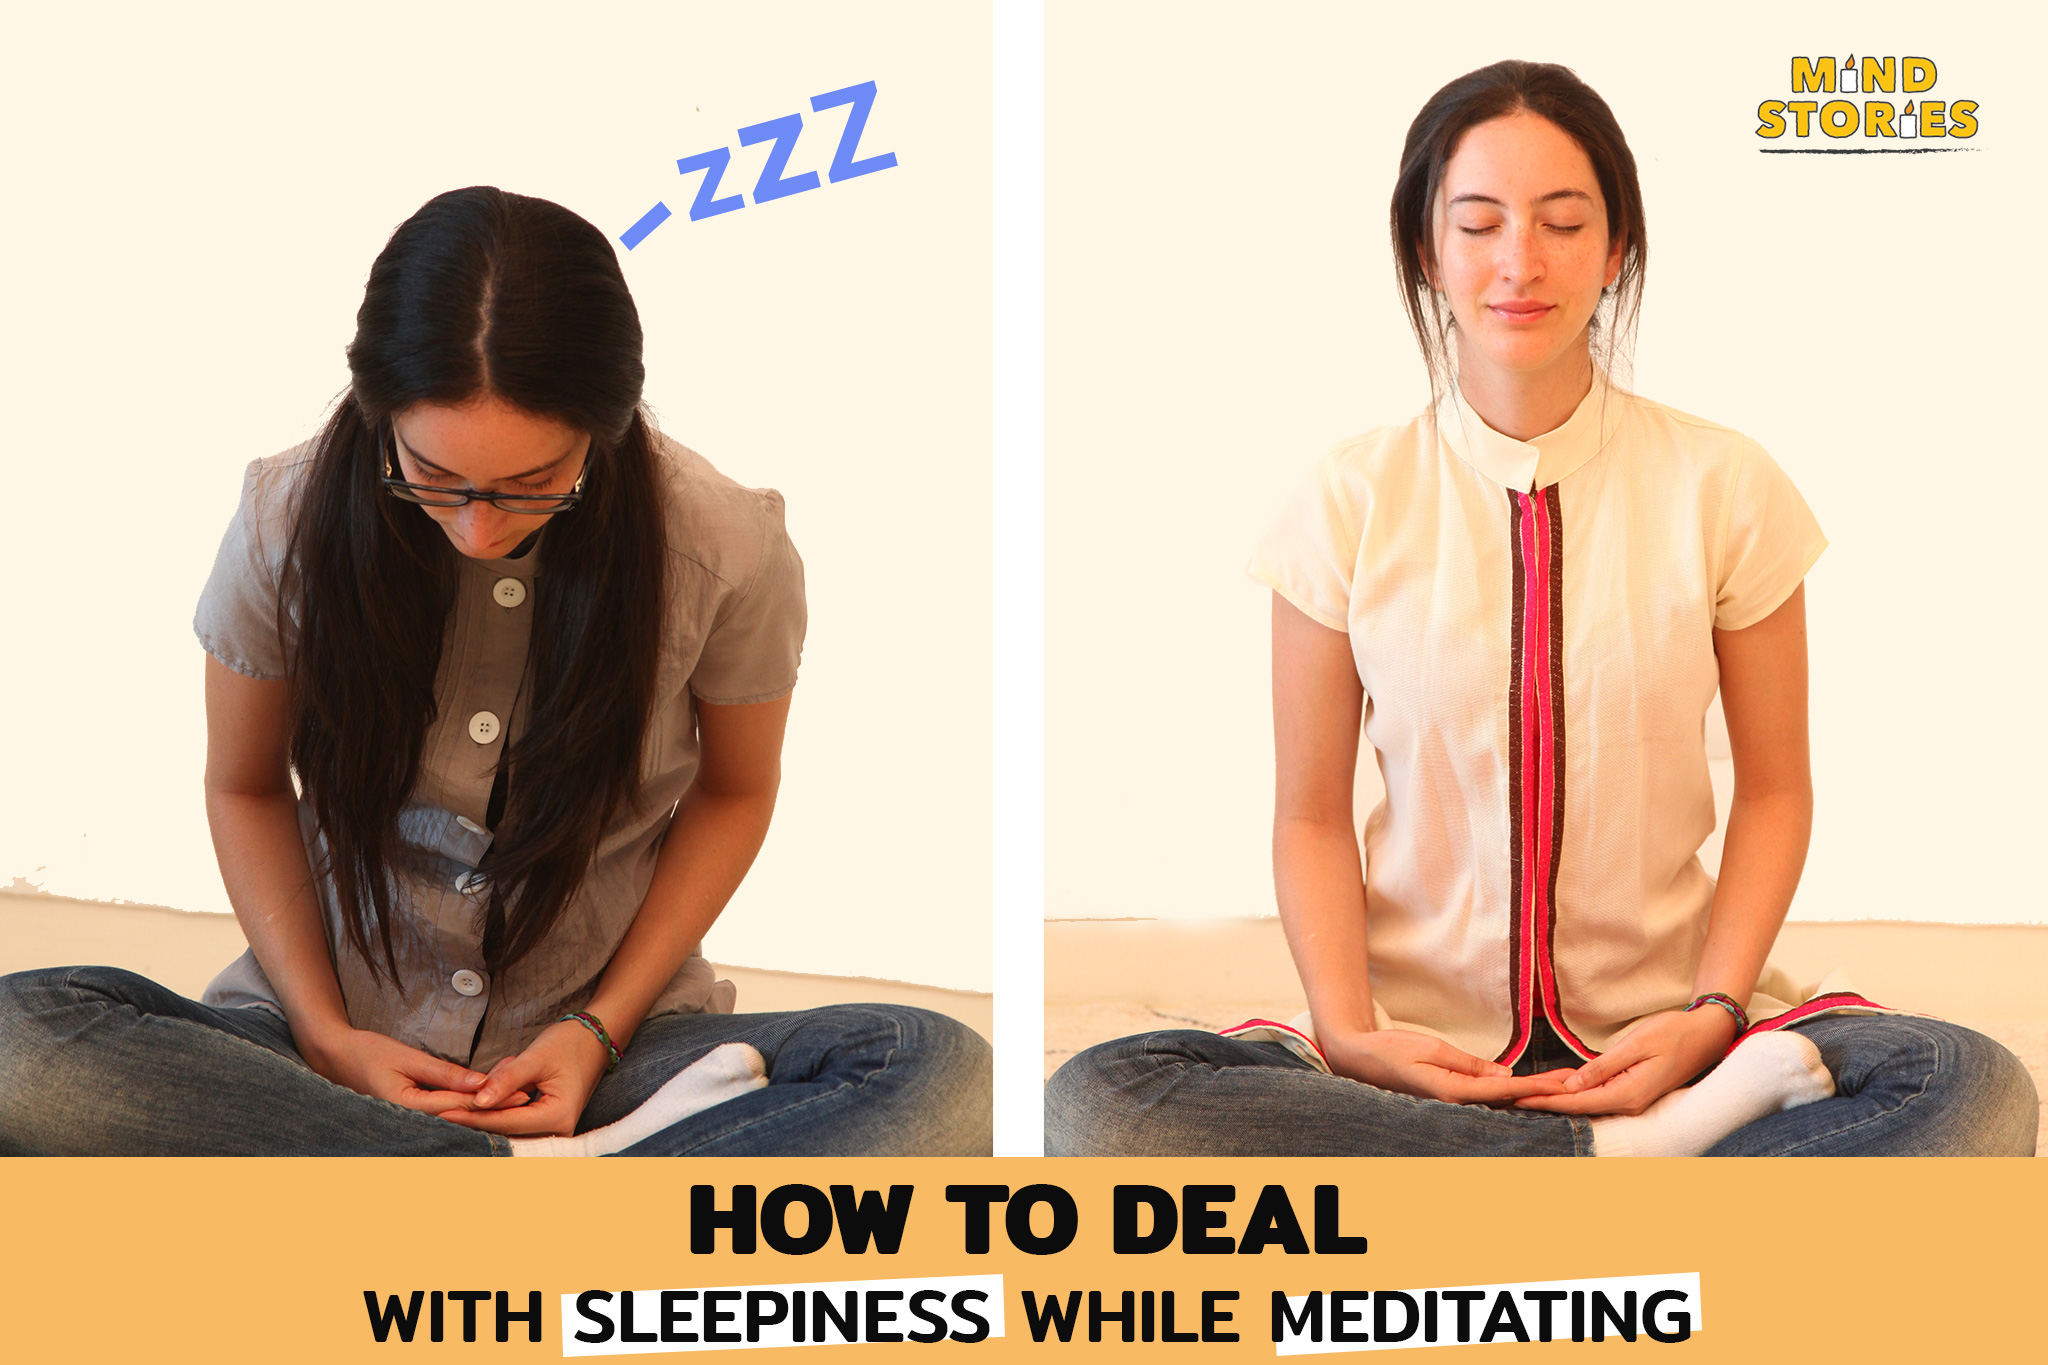 How to deal with sleepiness while meditating